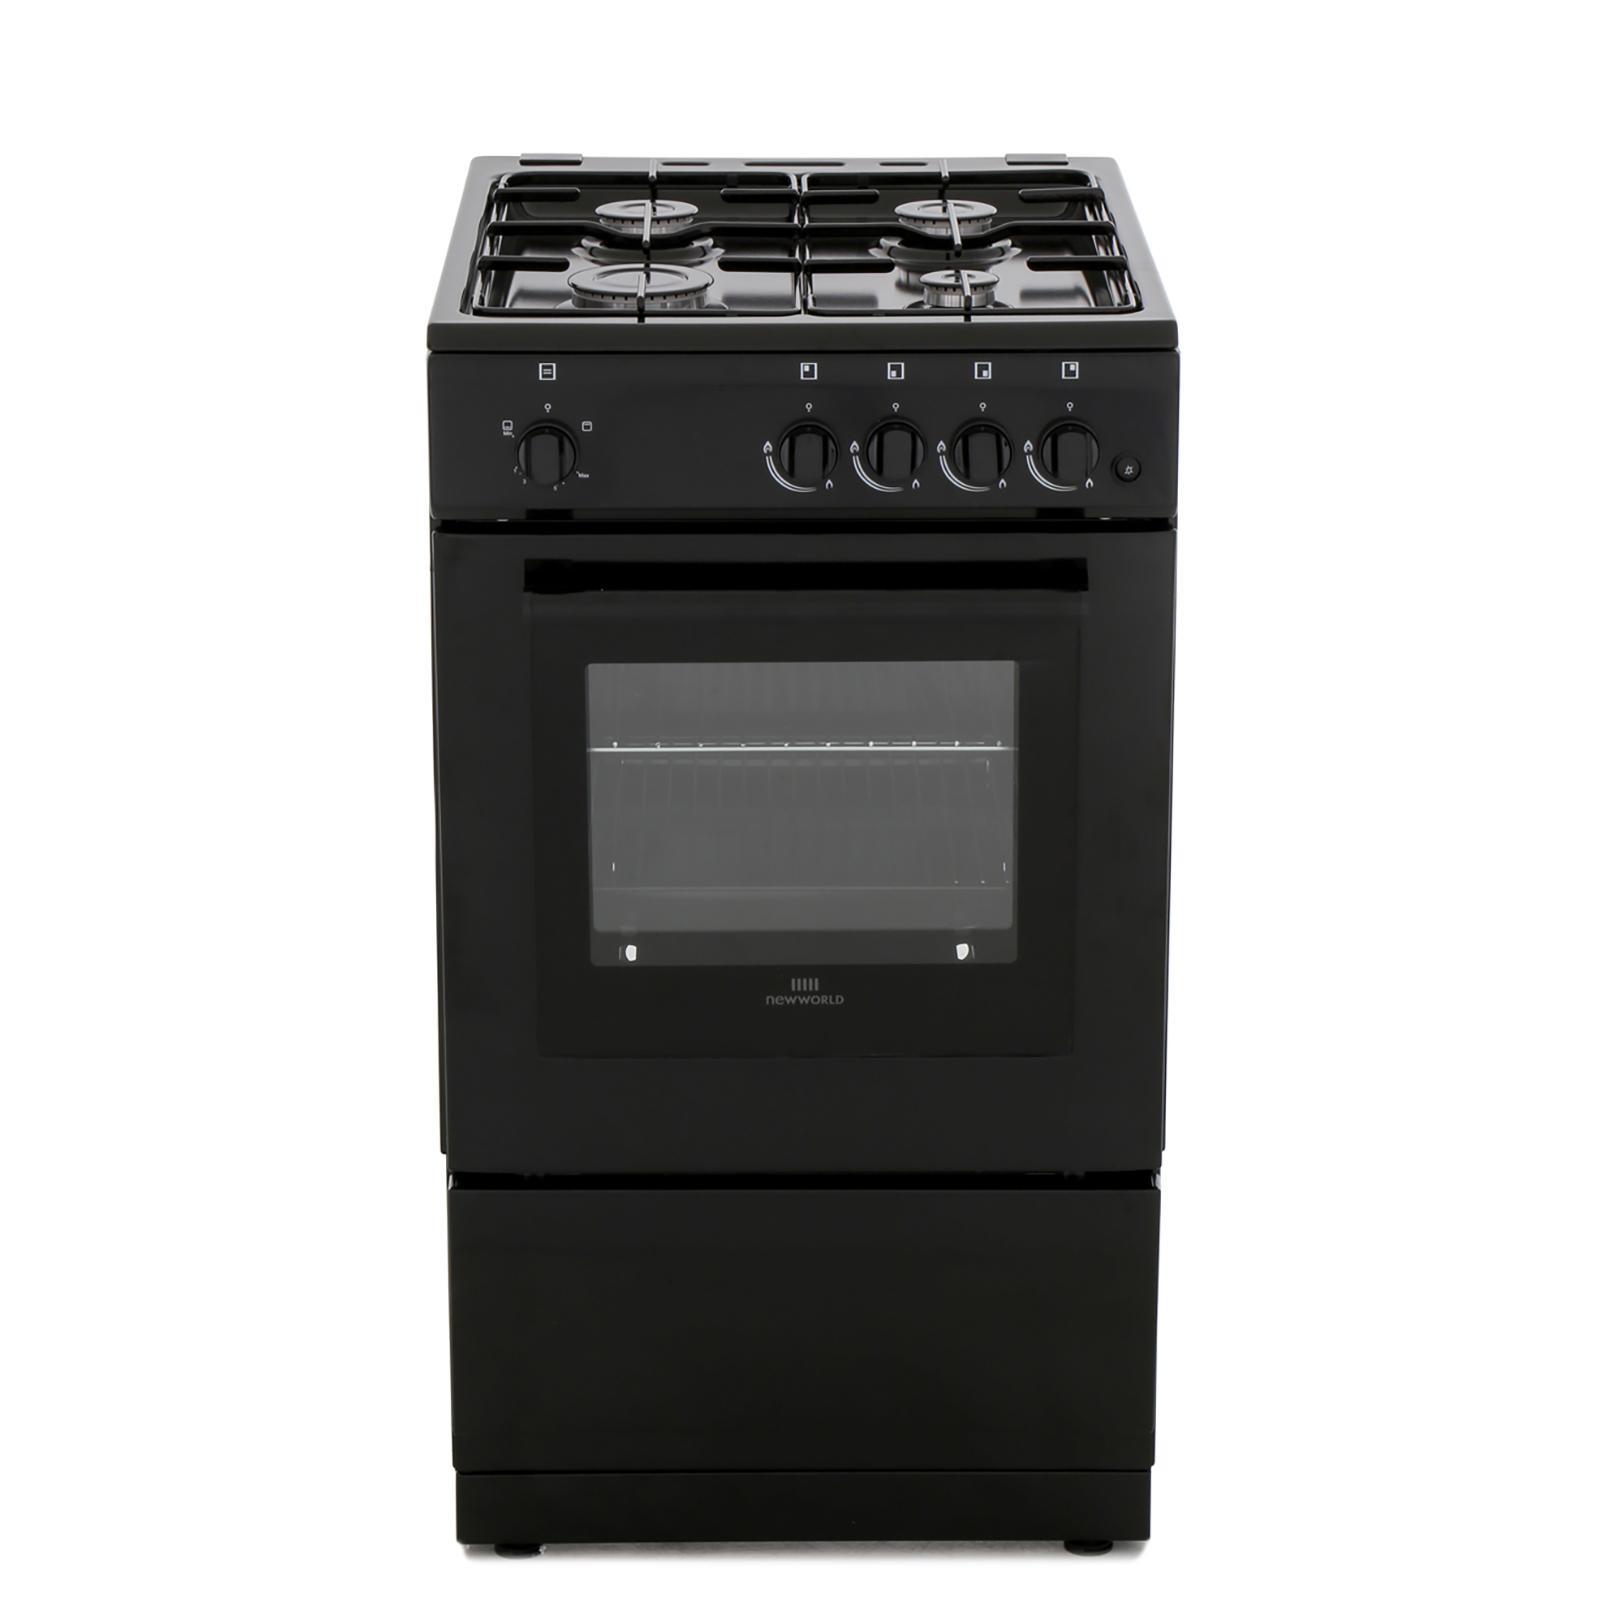 New World 50GSO Black Gas Cooker with Single Oven